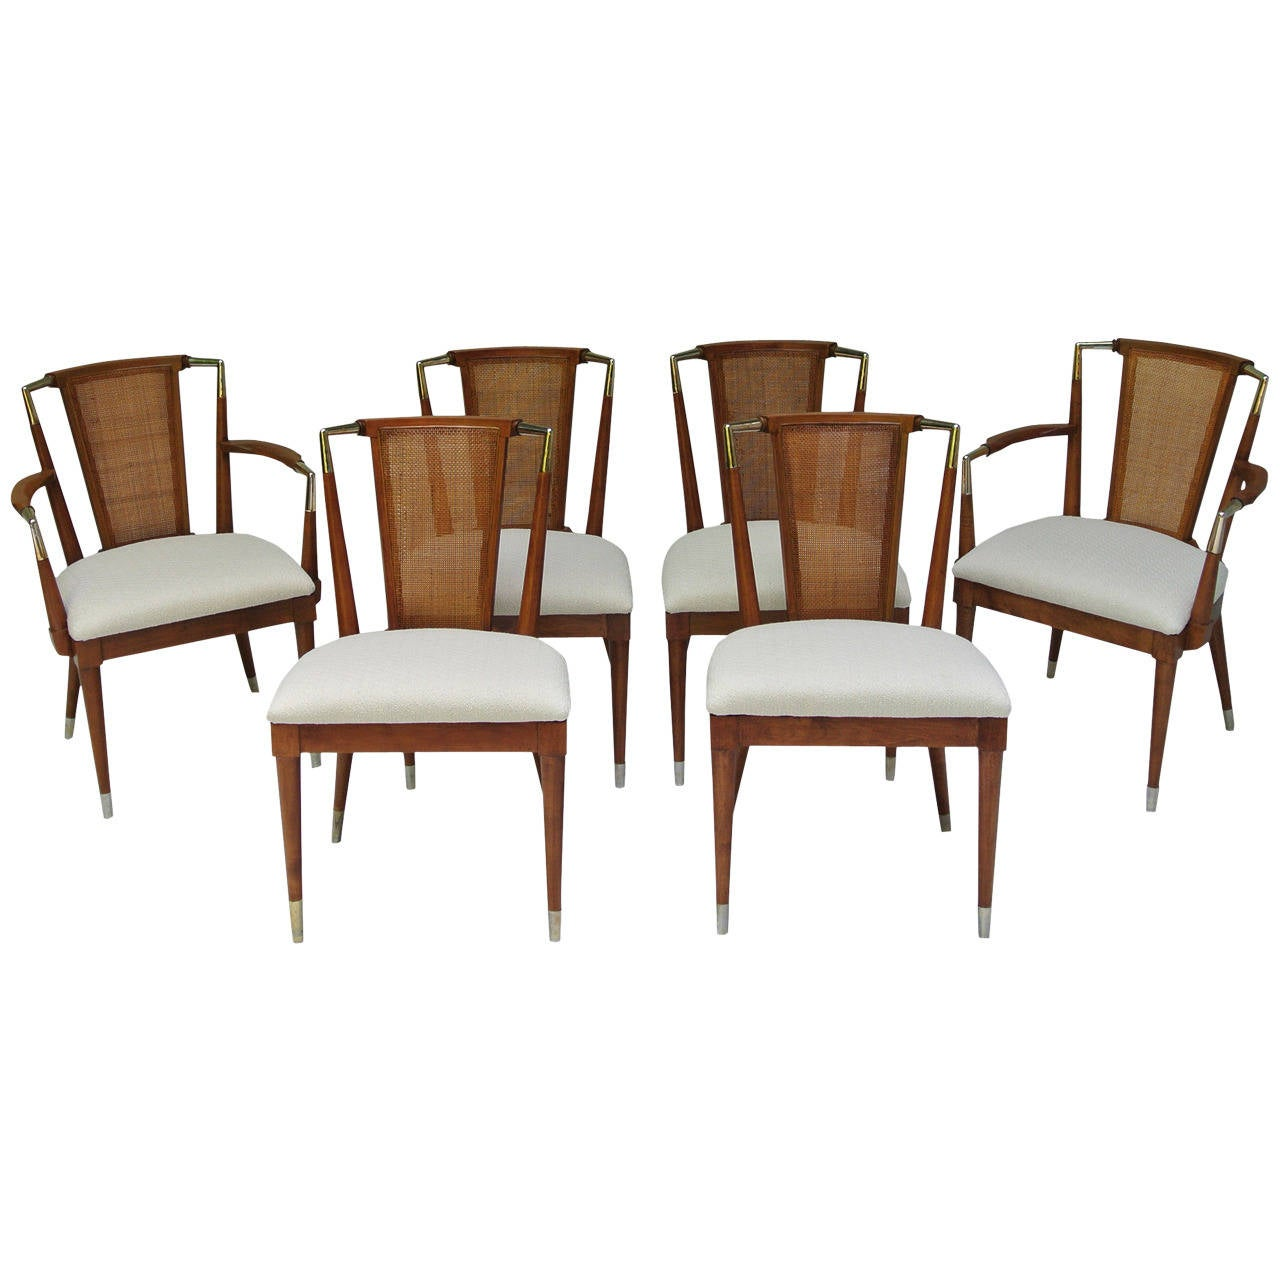 Bert England Forward Trend Six Cane and Brass Accented Dining Chairs, 1960